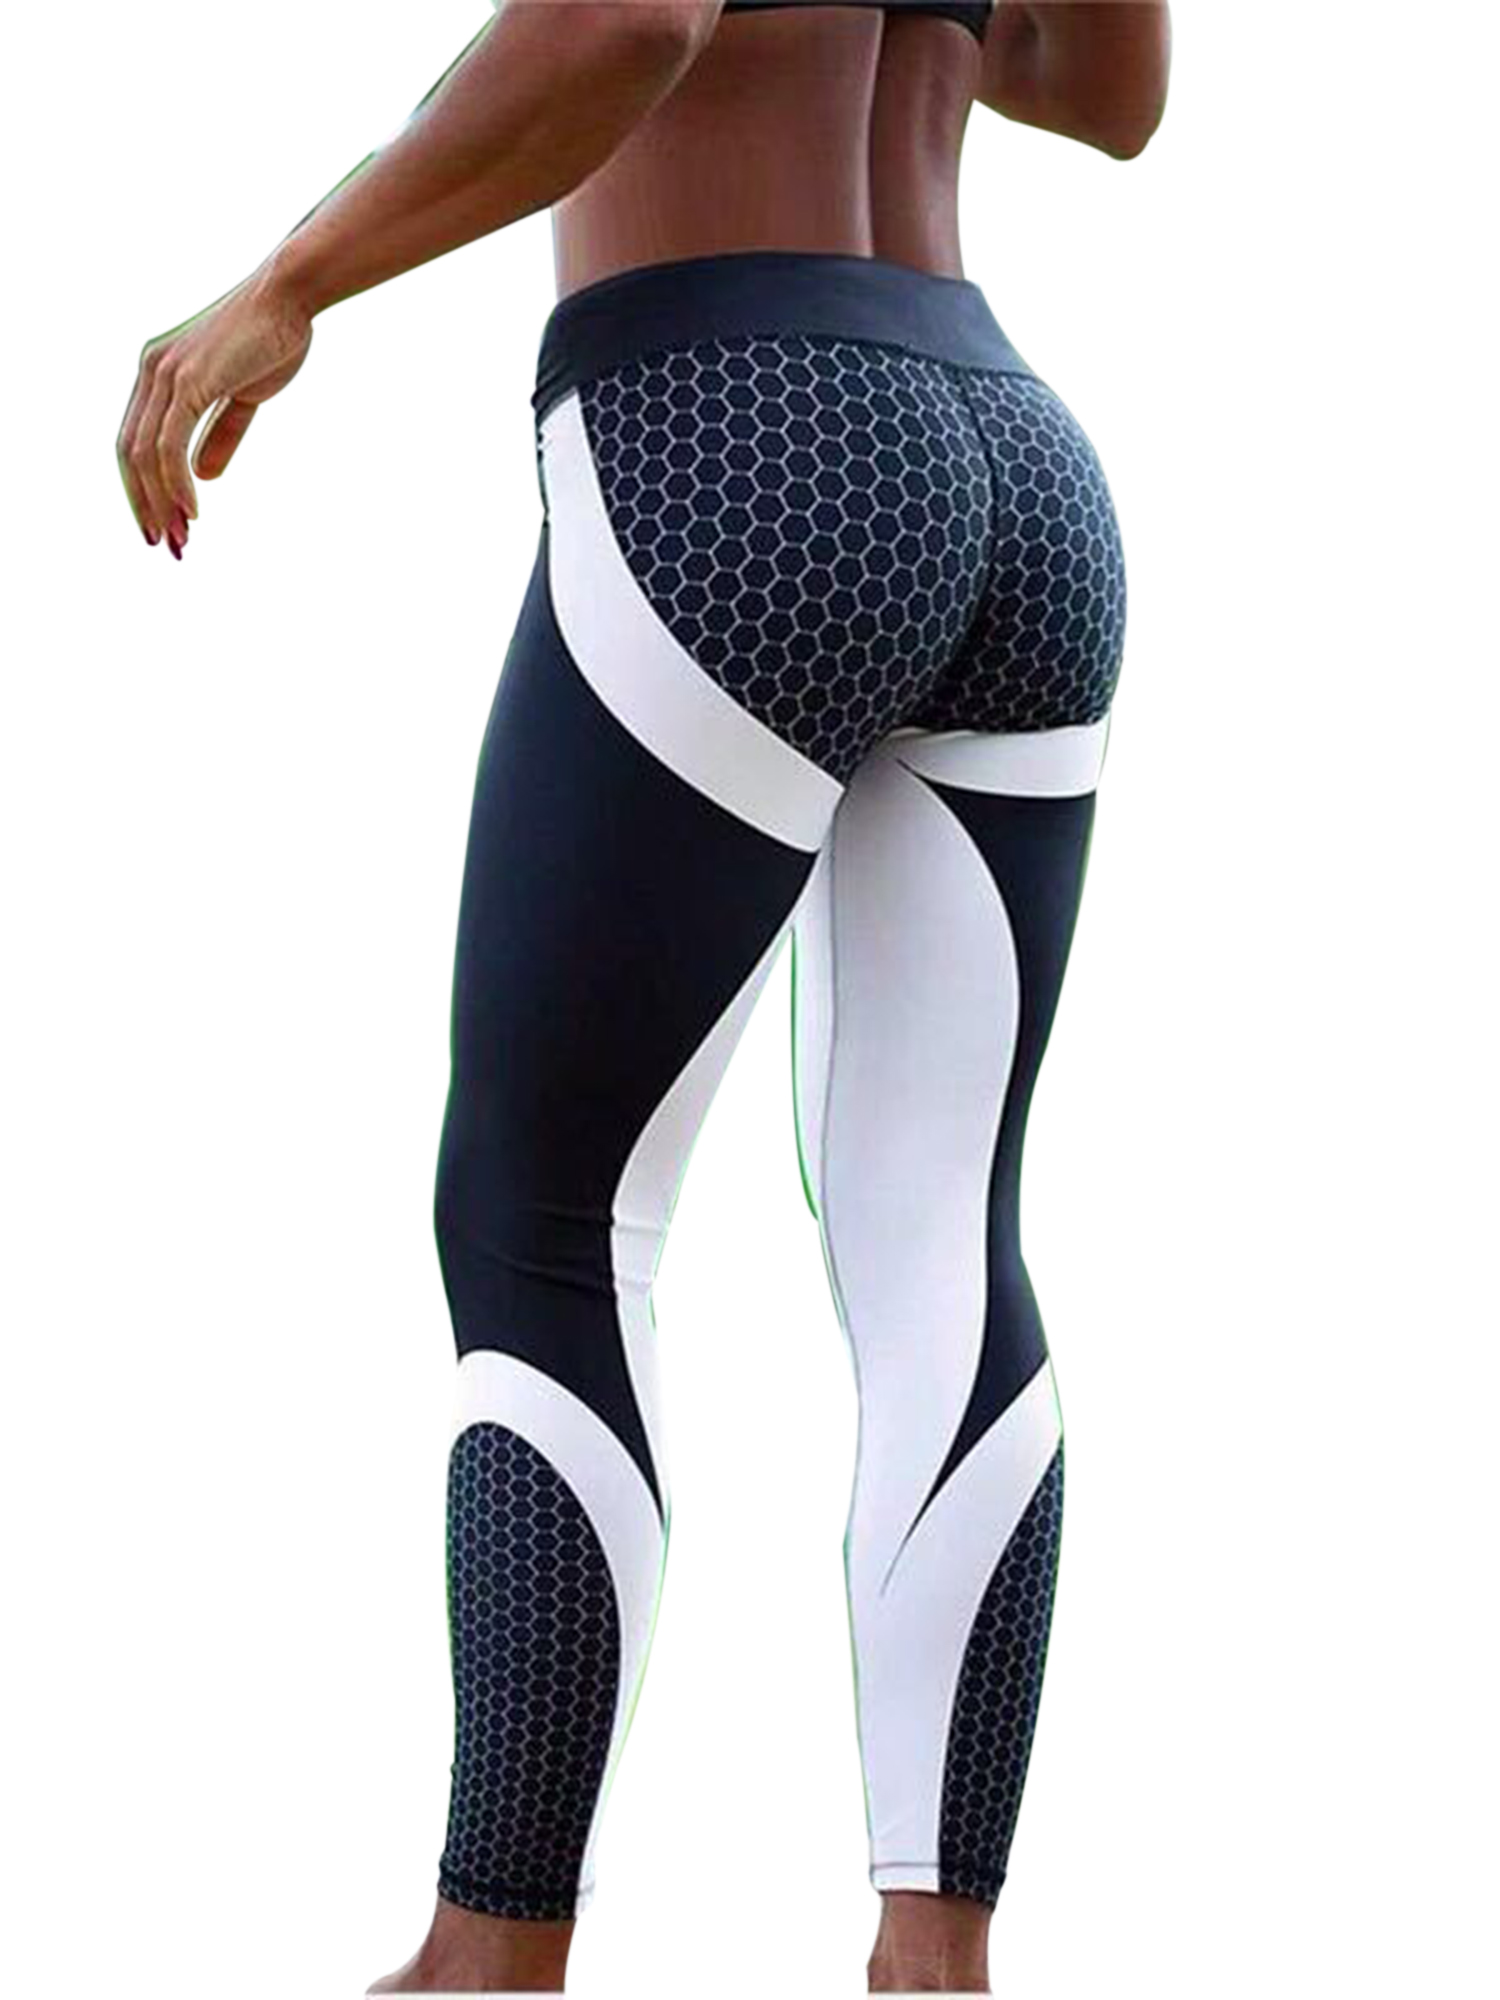 Womens Yoga Pants Fitness Stretch Leggings Running Gym Exercise Sports Trousers